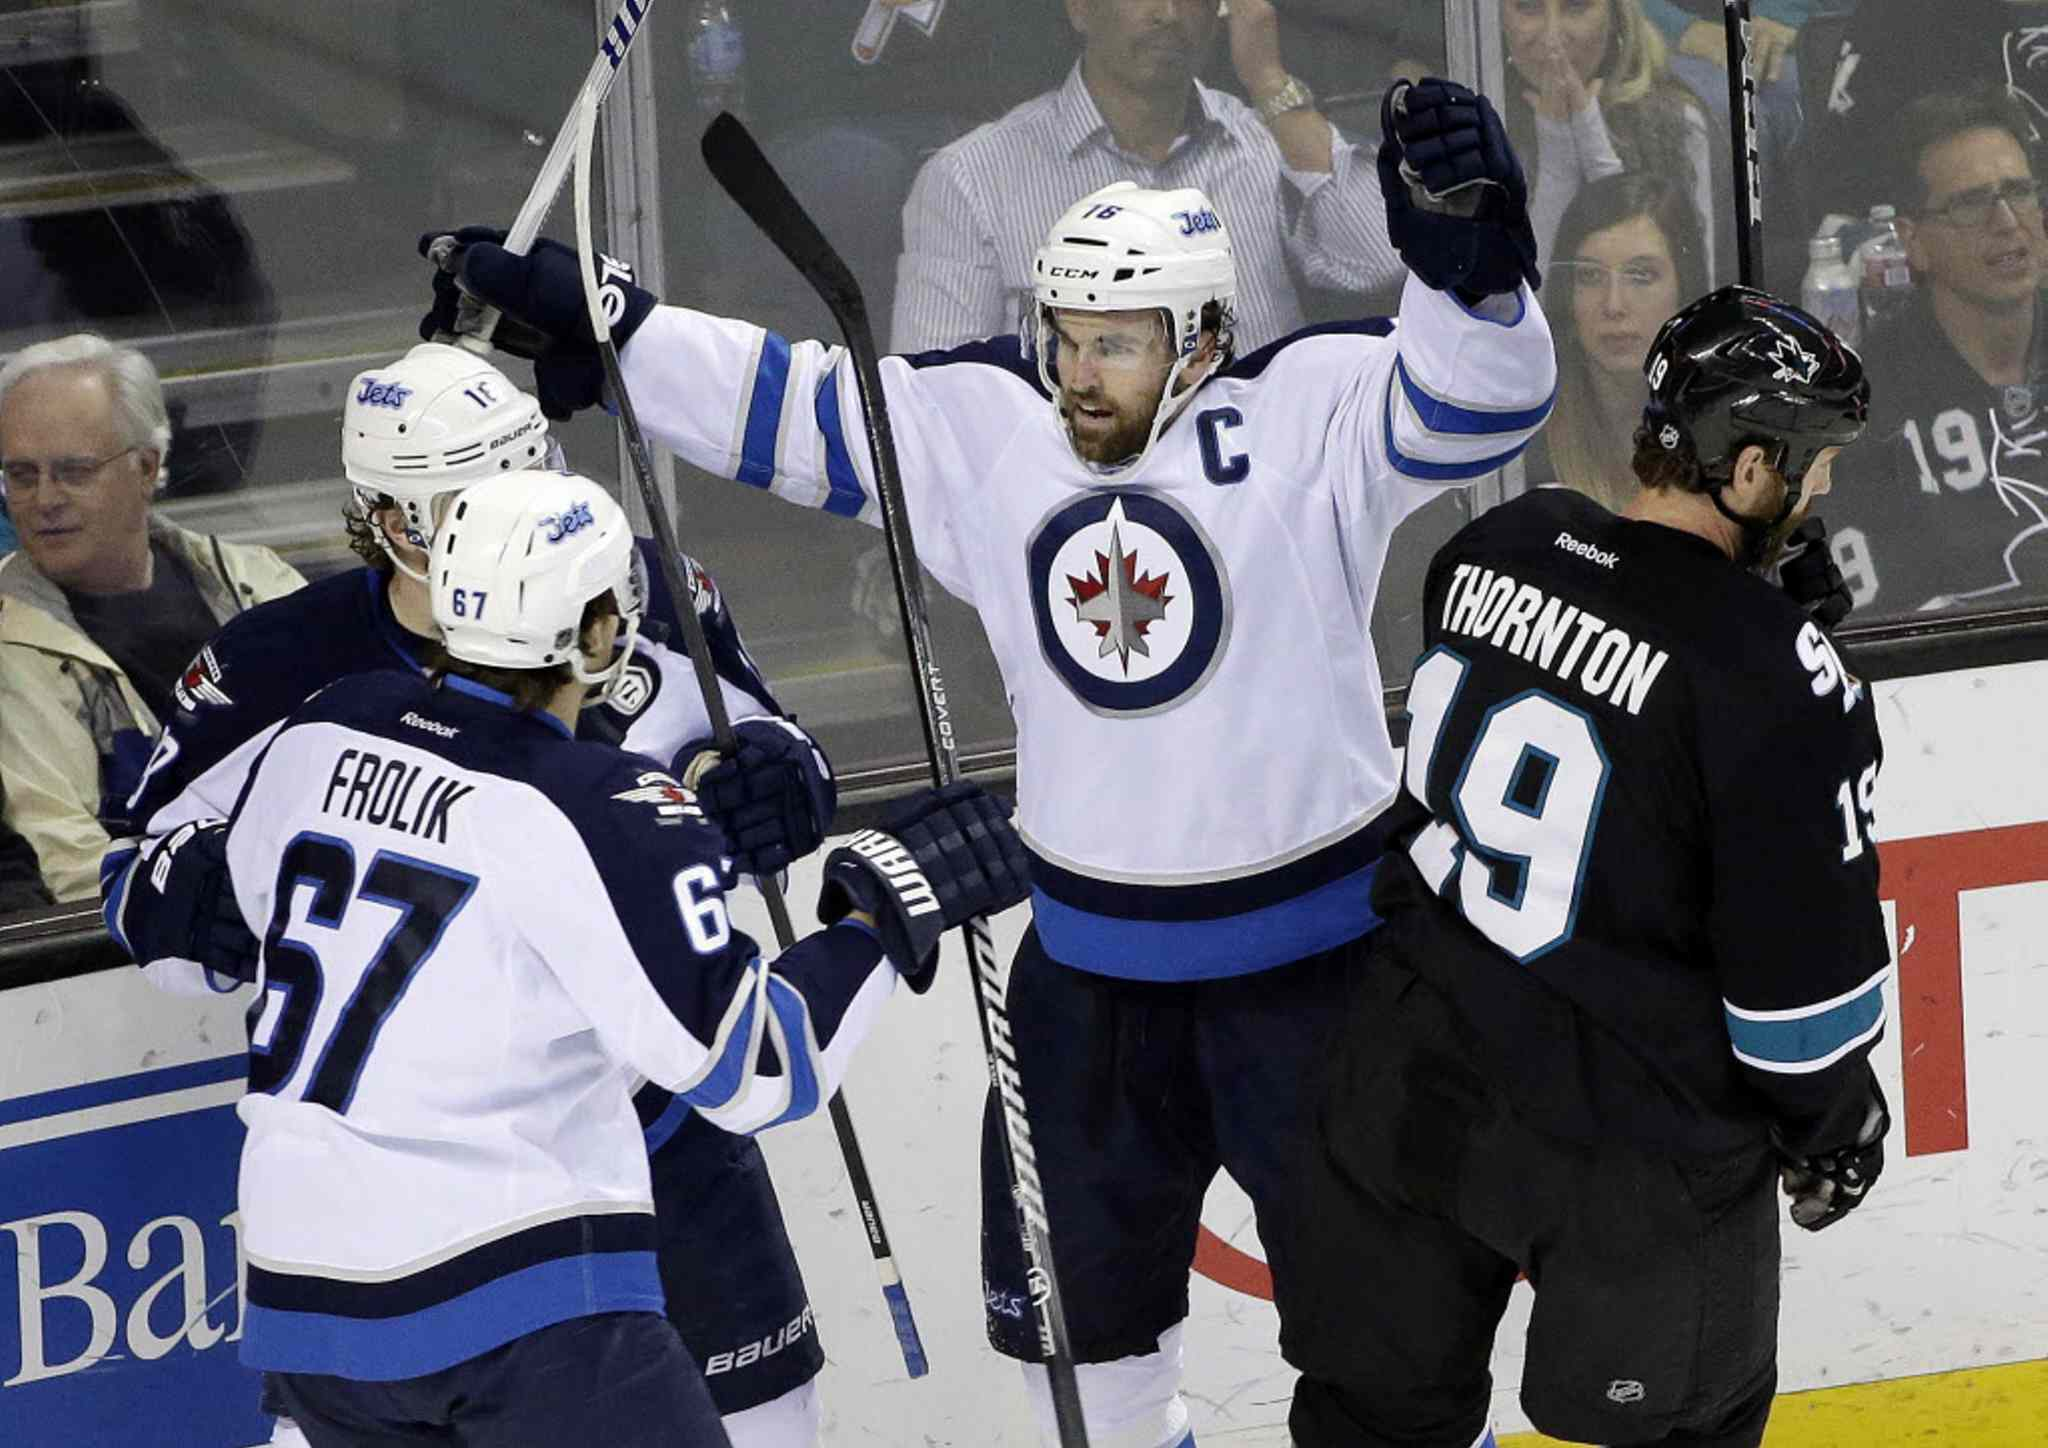 Winnipeg Jets' Andrew Ladd, center, celebrates his goal against the San Jose Sharks during the first period Thursday night in San Jose, Calif.